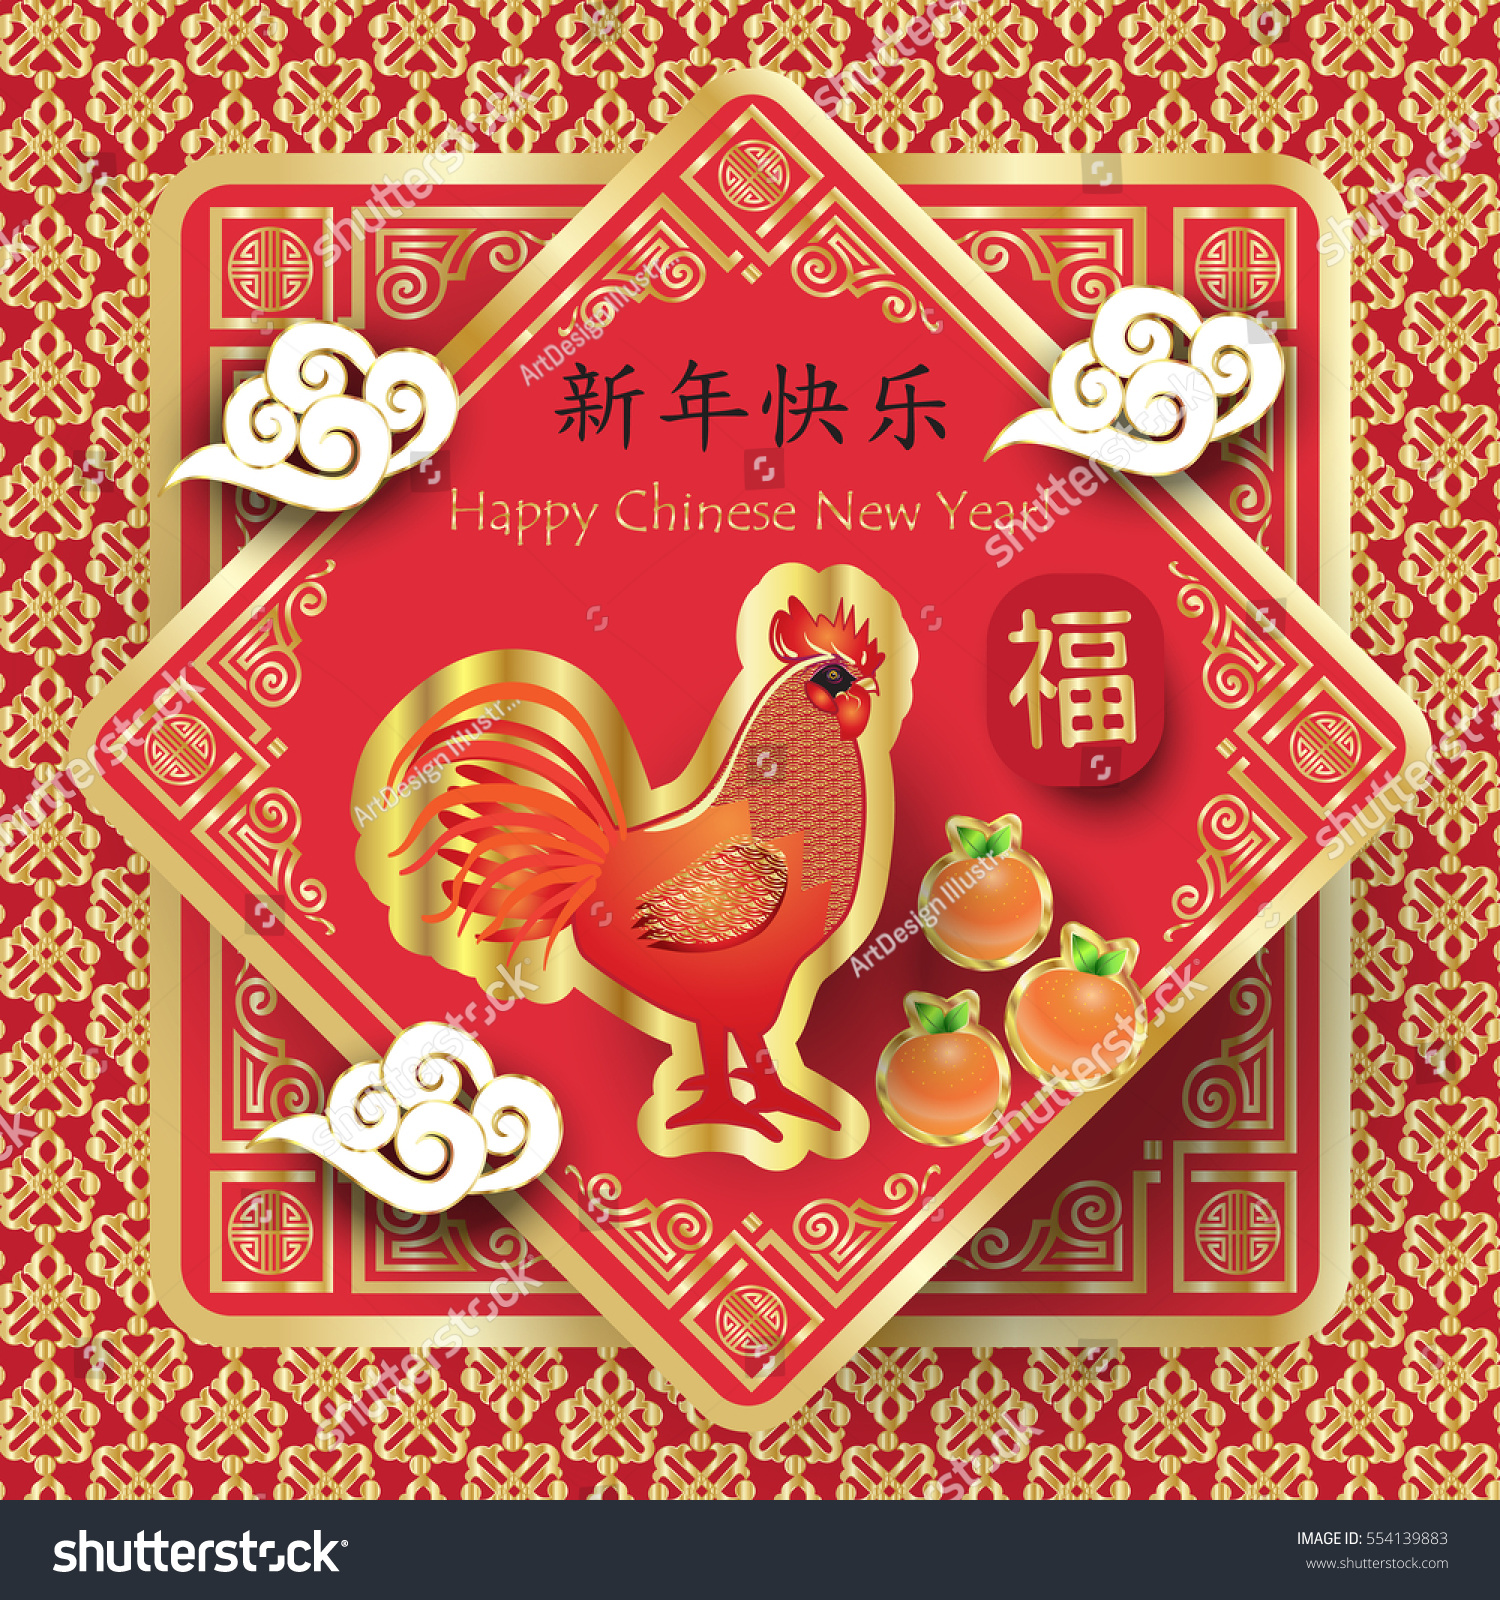 Vector Chinese New Year Rooster Greeting Stock Vector ...